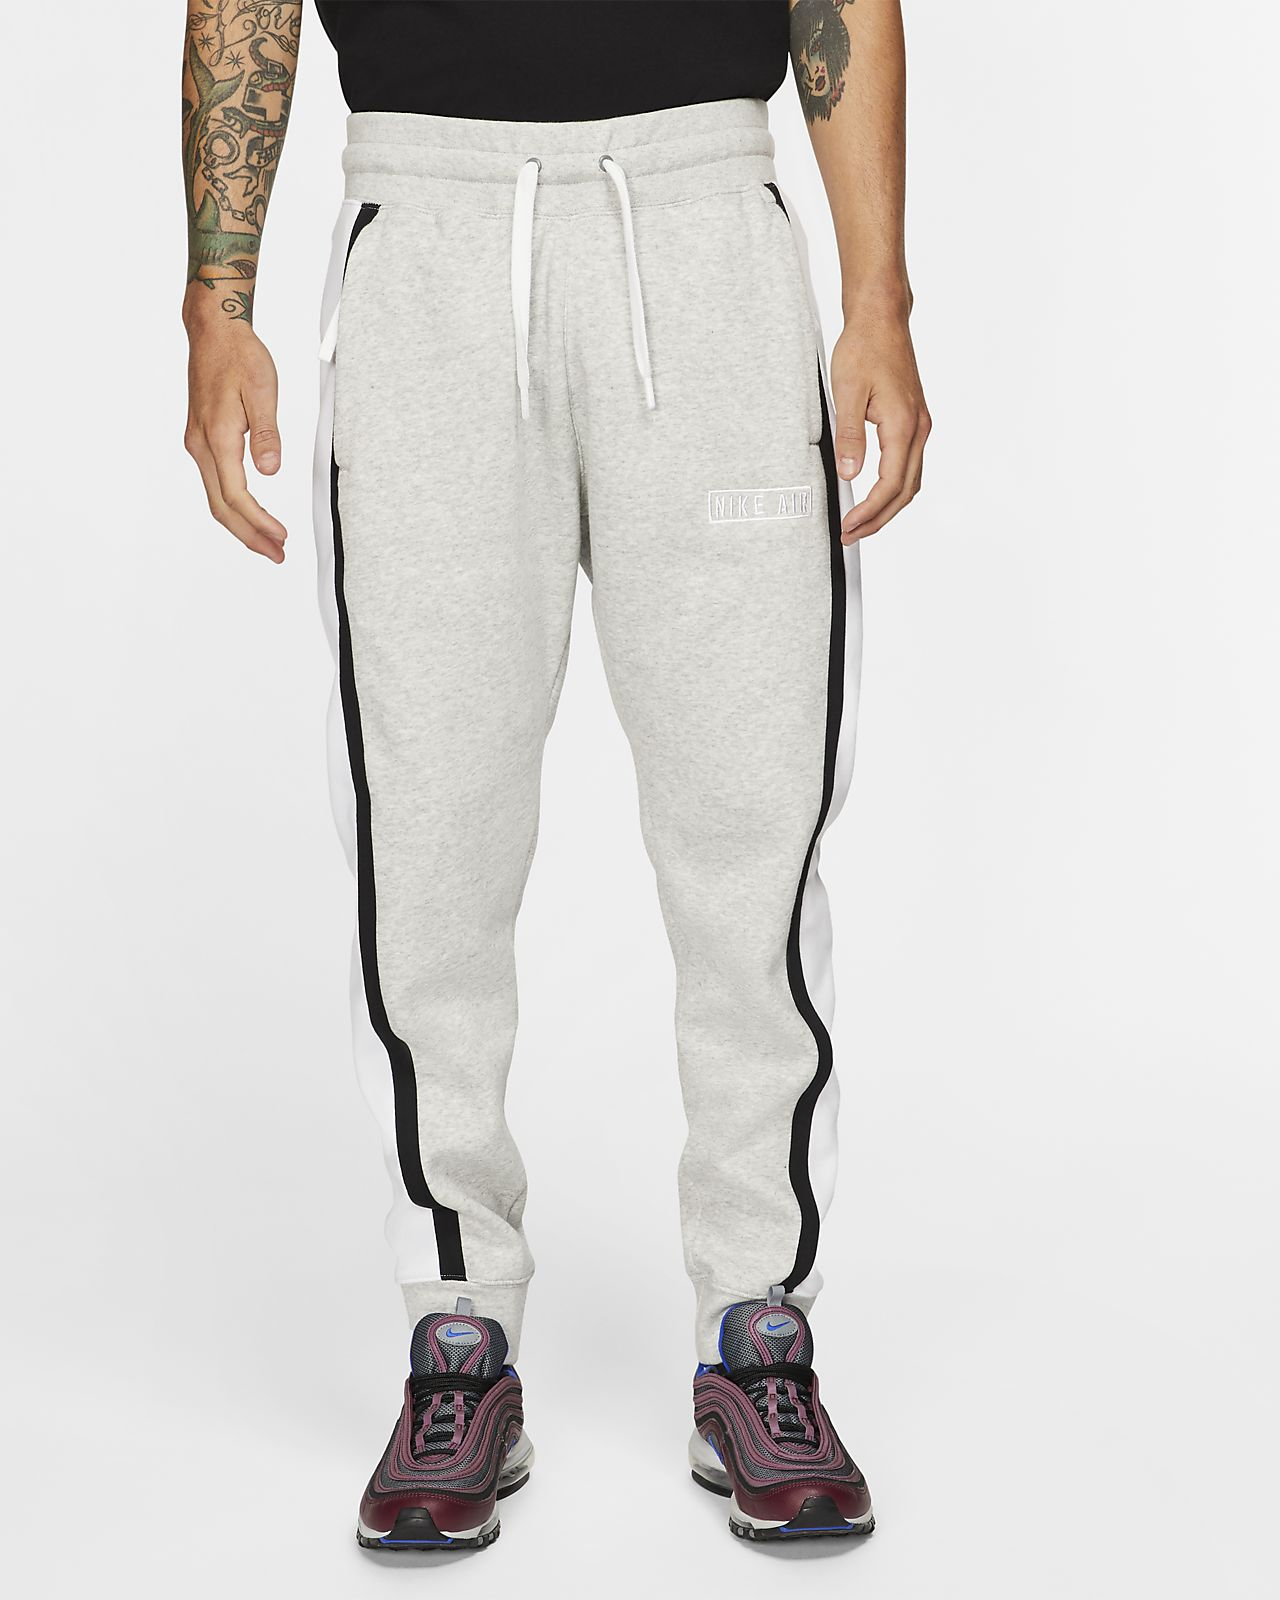 Nike Air Men's Fleece Trousers